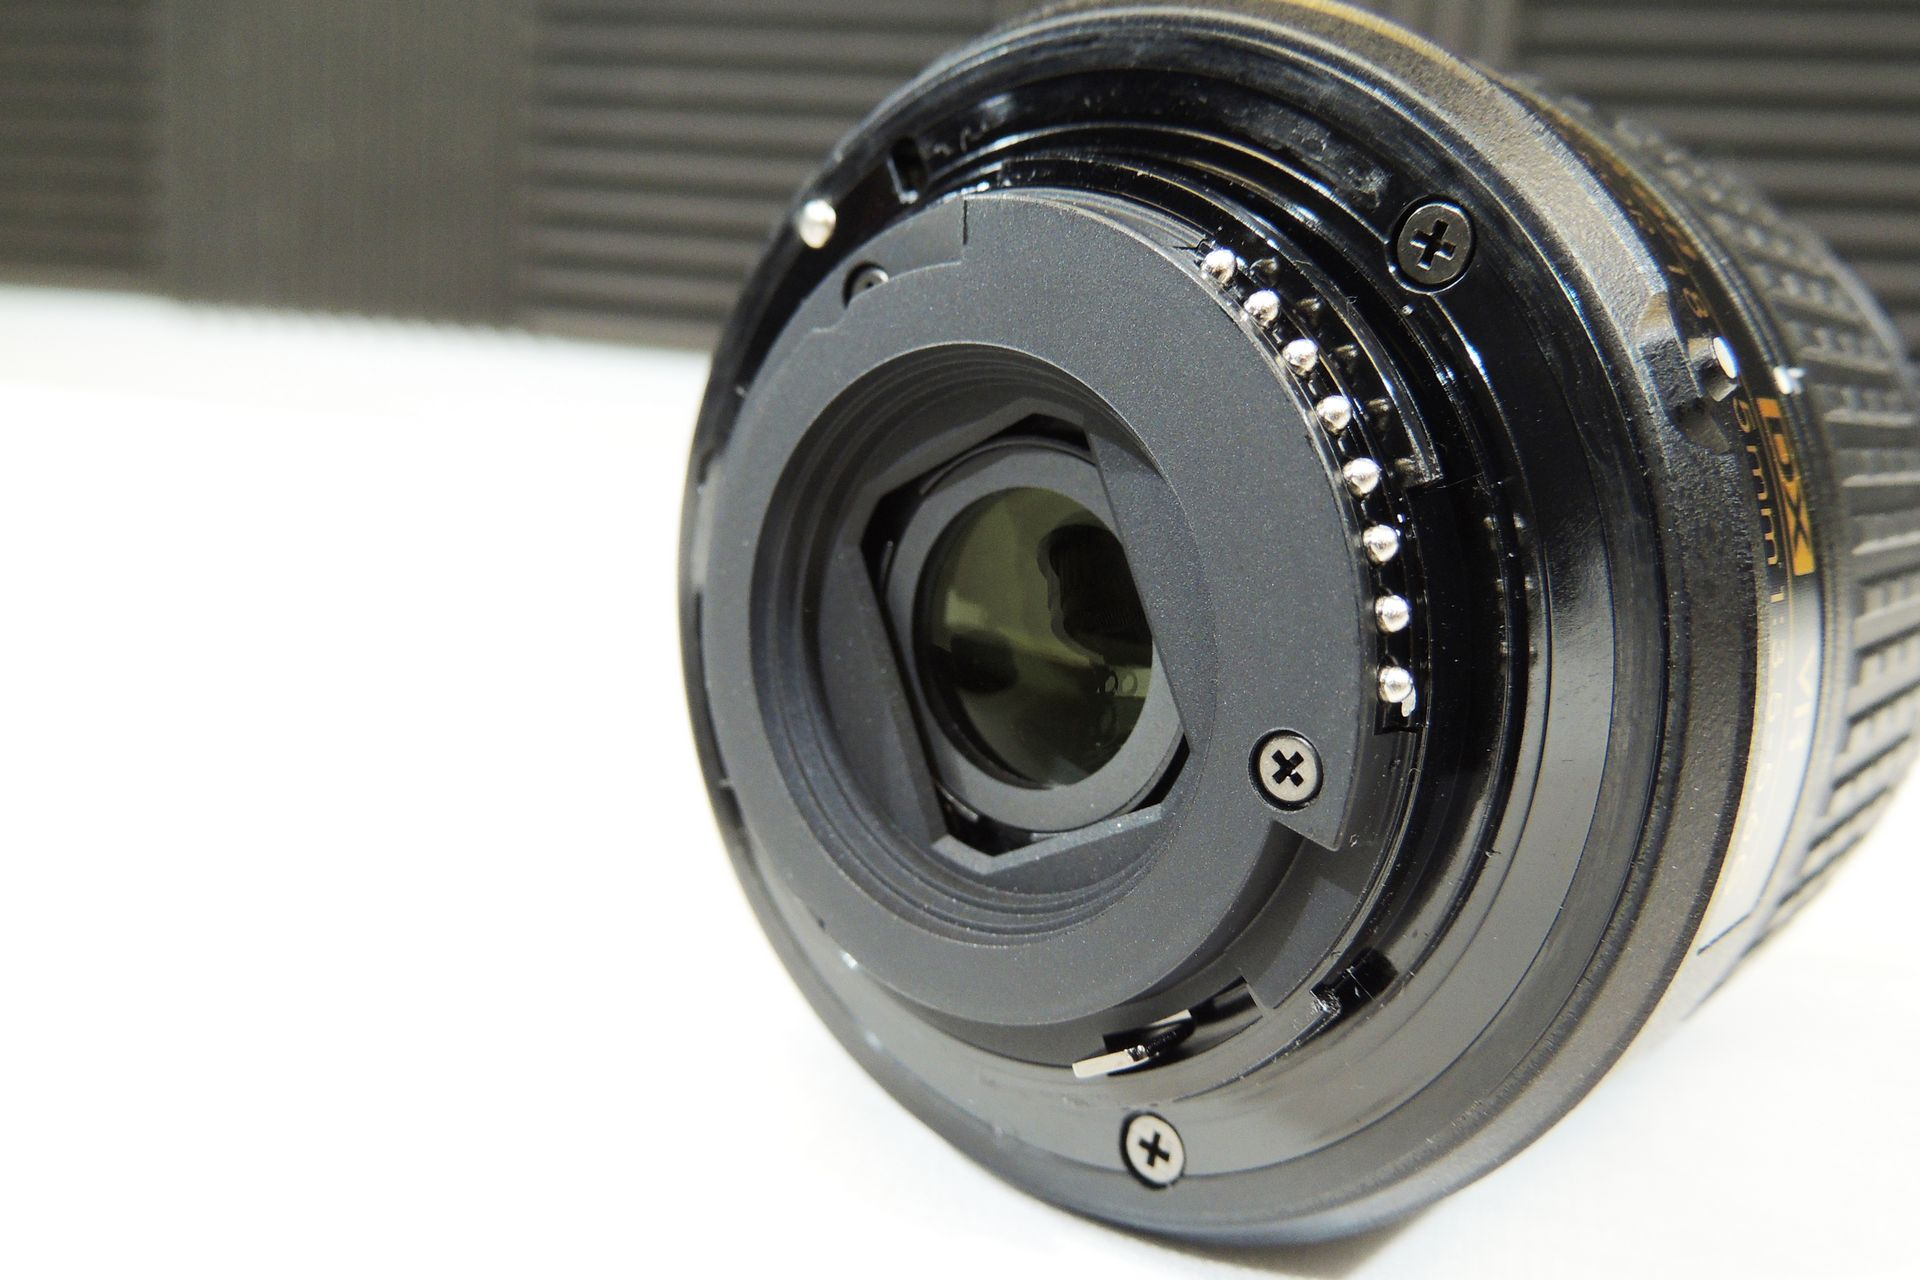 Nikon 18 - 35mm f3.5 - 5.6 G lens for sale at Plasma Music